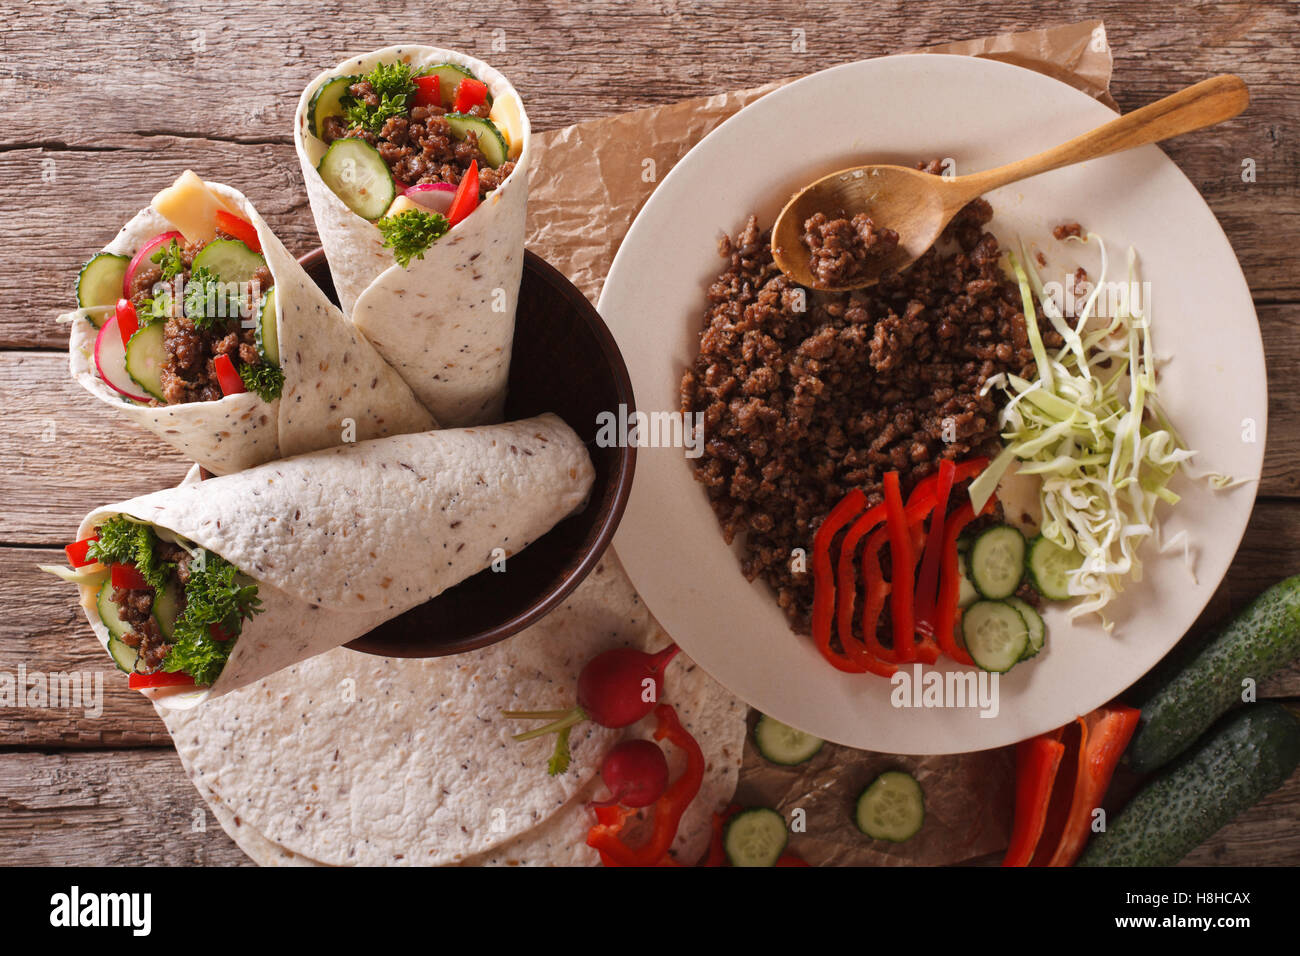 Sandwich roll stuffed with beef and vegetables close-up on the table. horizontal view from above - Stock Image